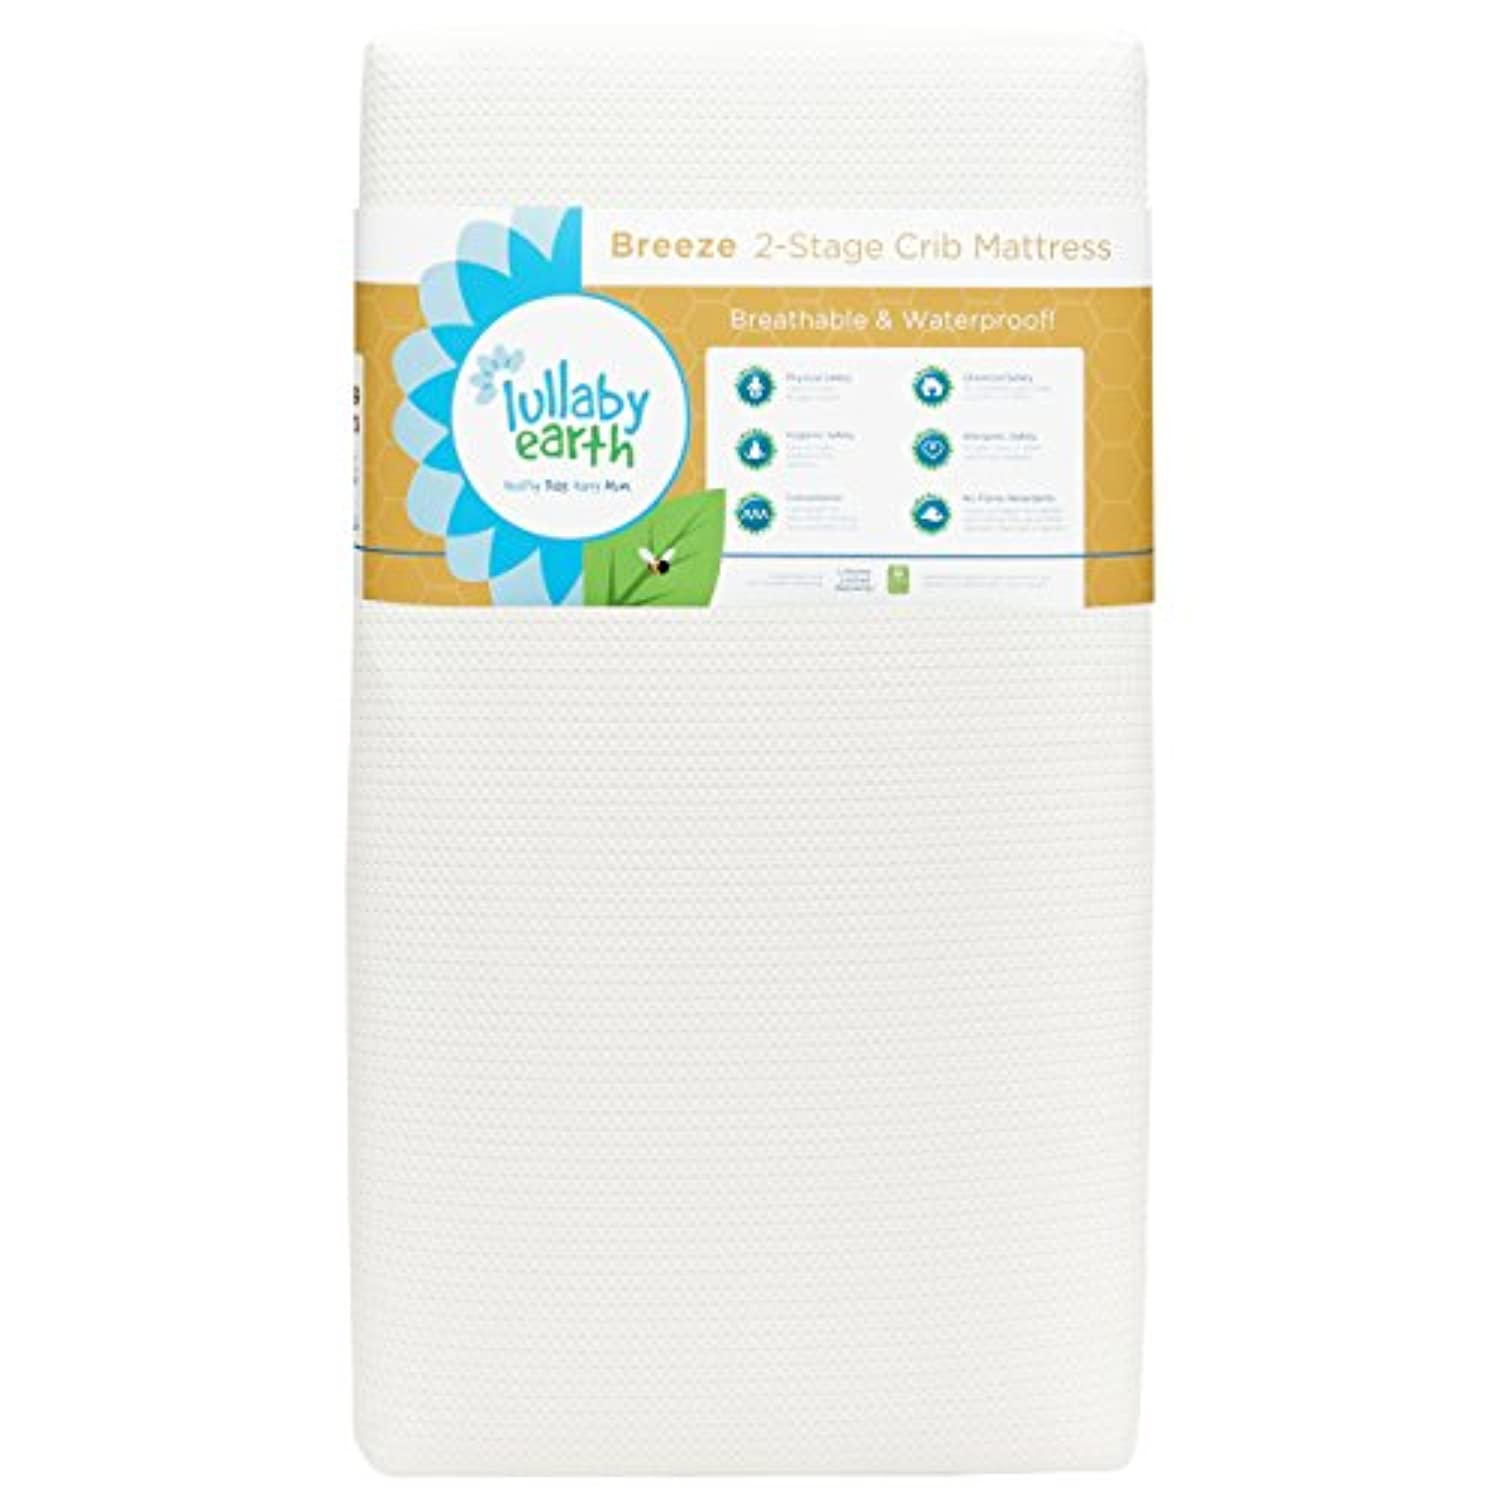 Lullaby Earth Breeze 2- Stage Crib Mattress - White by Naturepedic [並行輸入品]